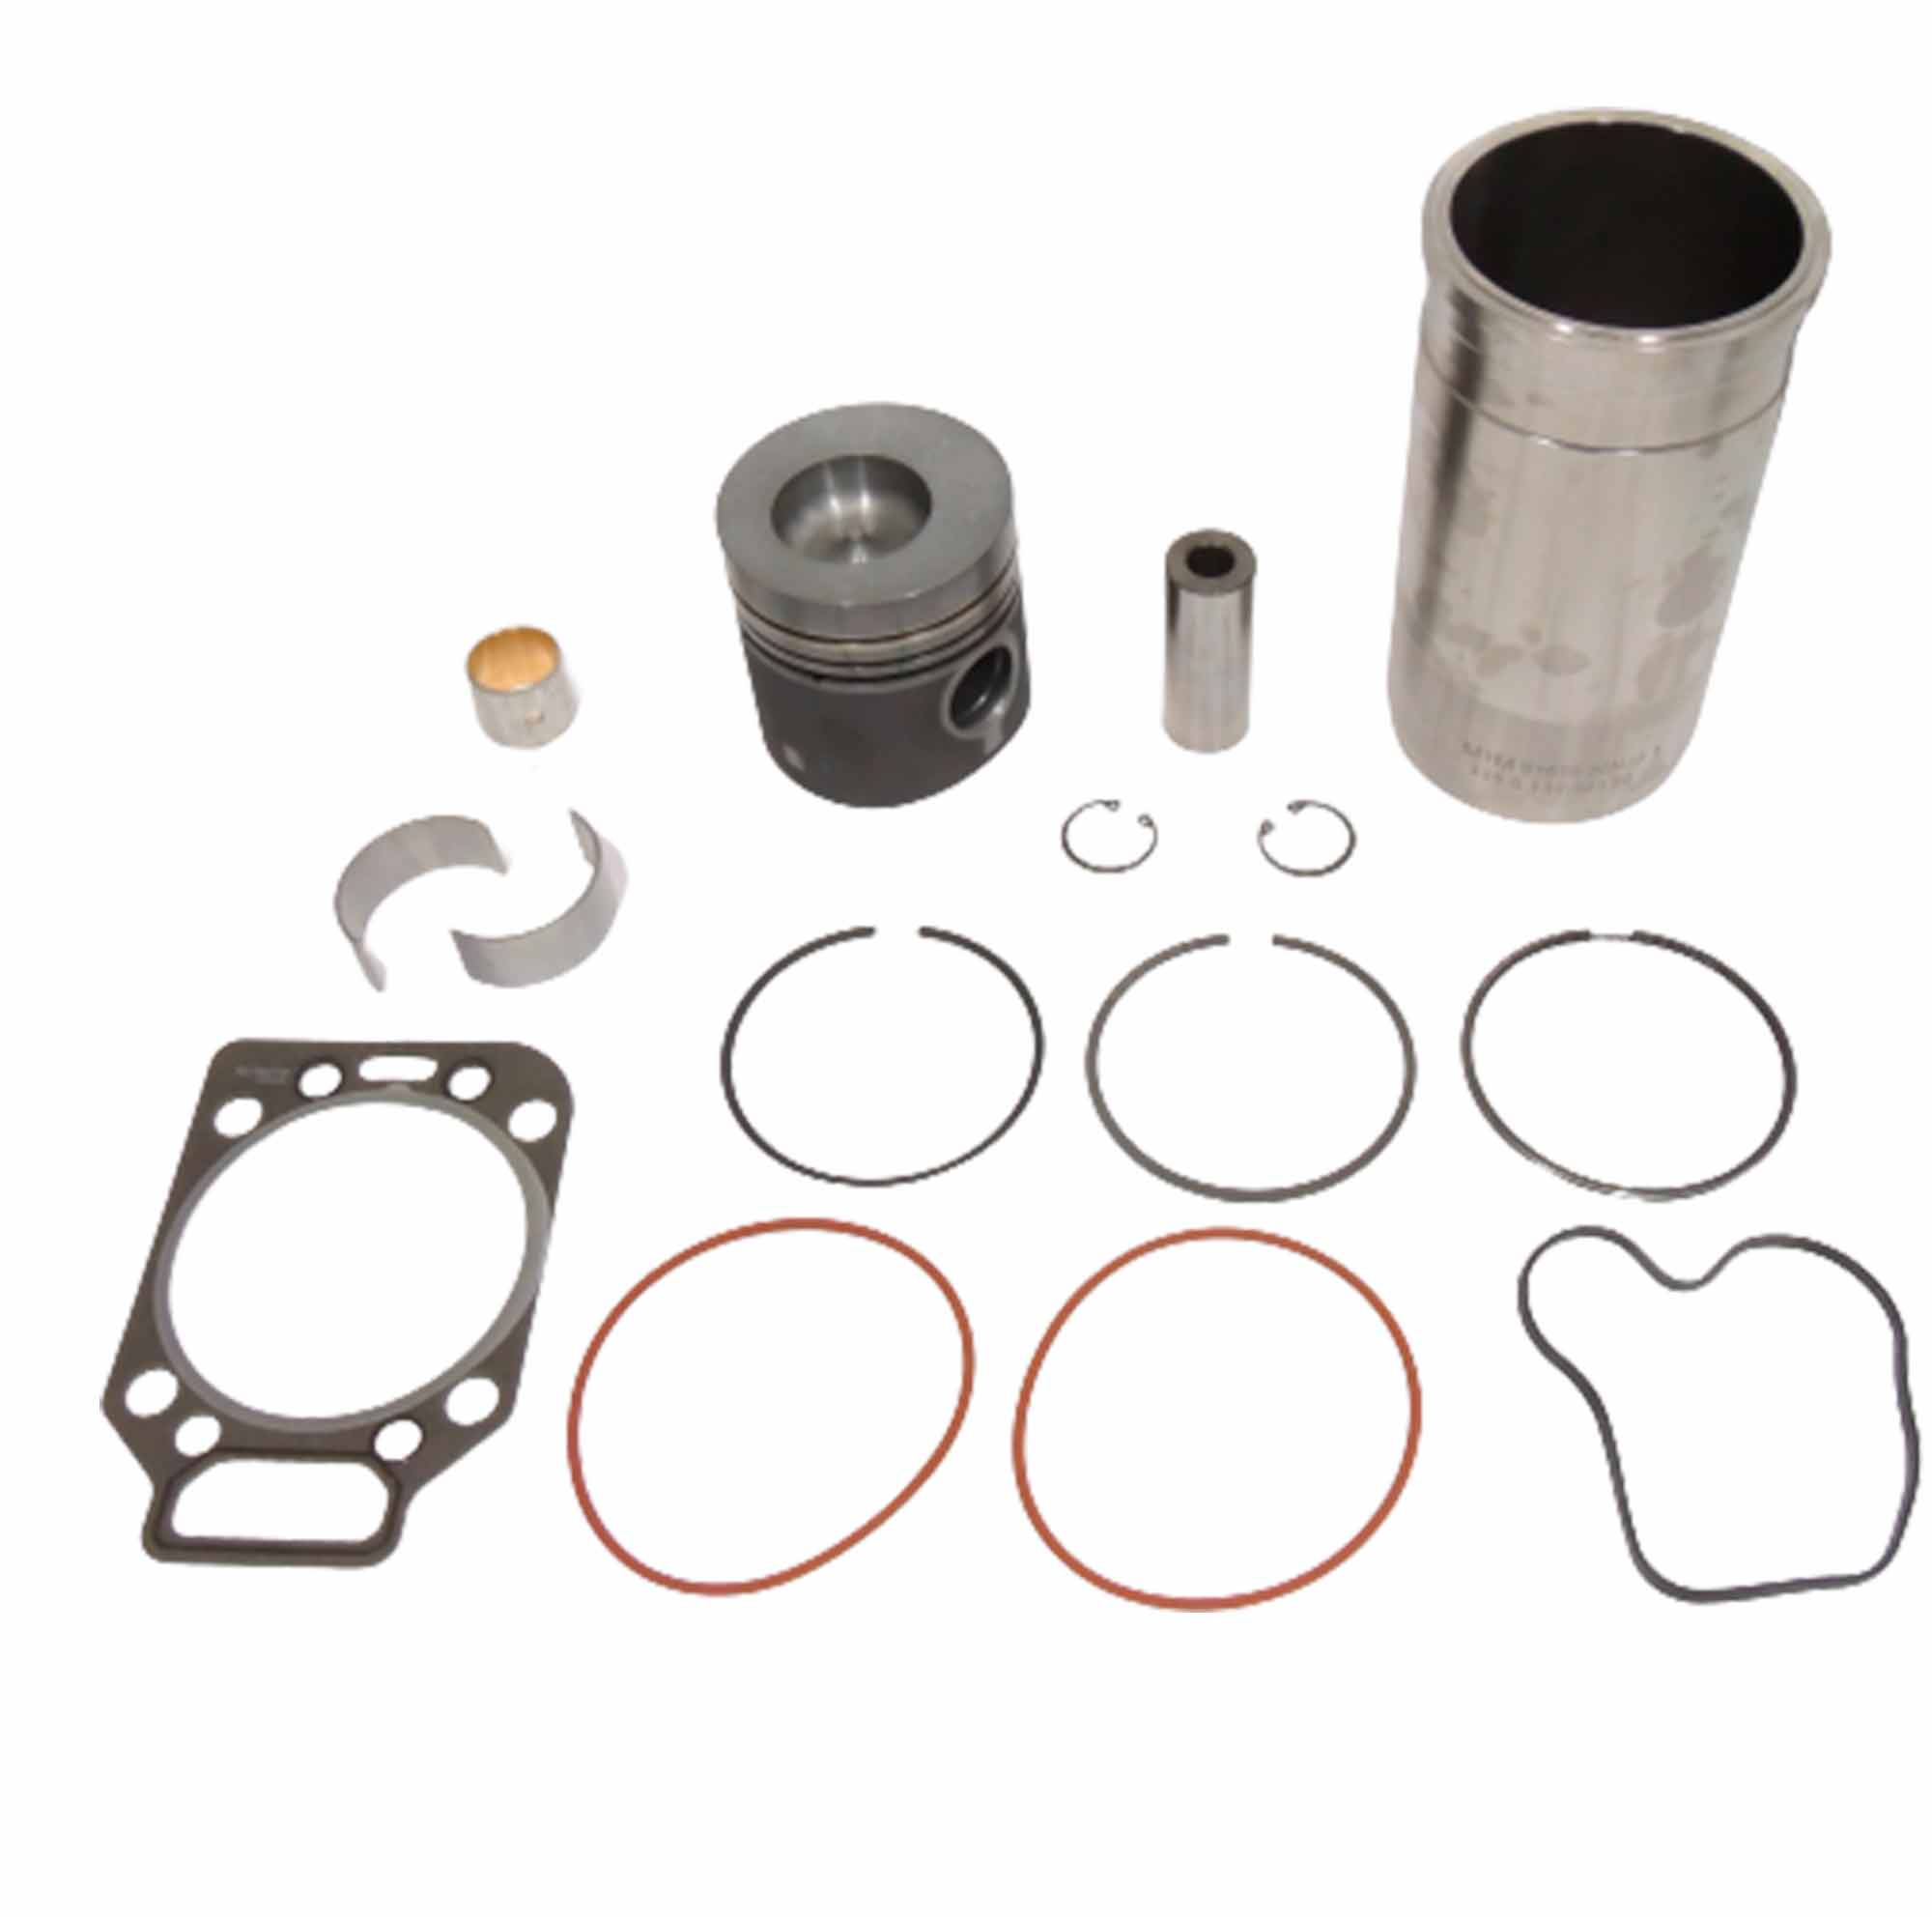 922980192958 - Kit de reparo para 1 cilindro - Super Master Kit std